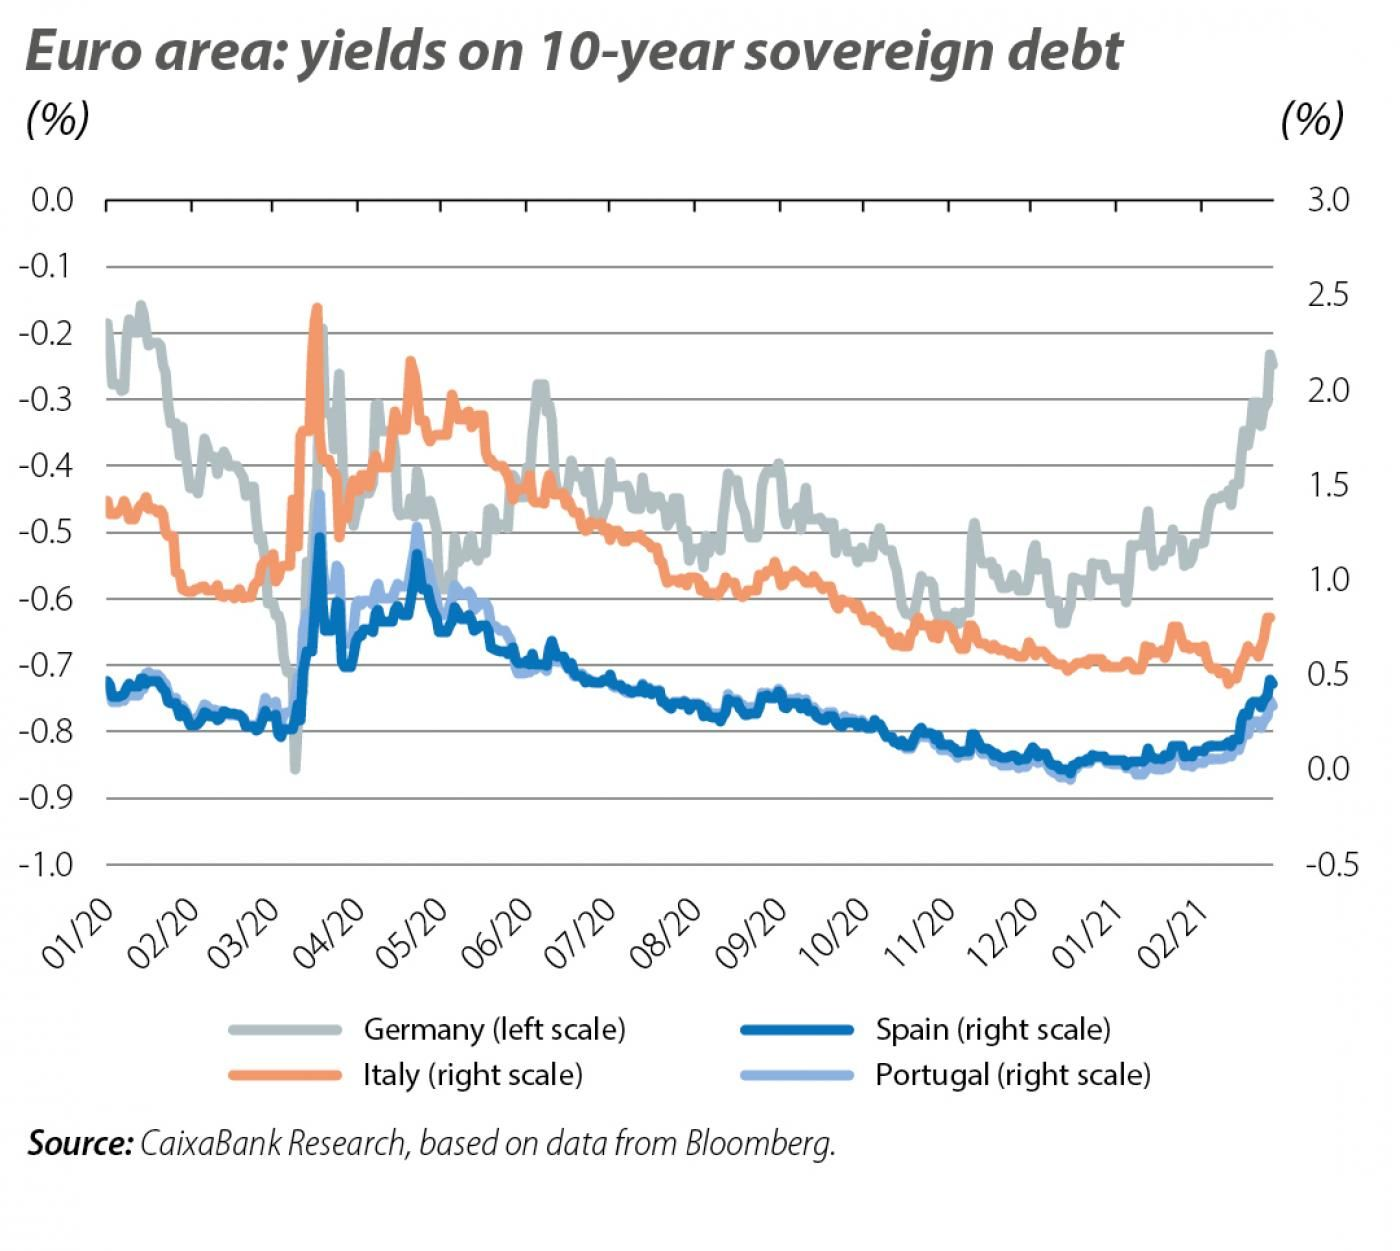 Euro area: yields on 10-year sovereign debt